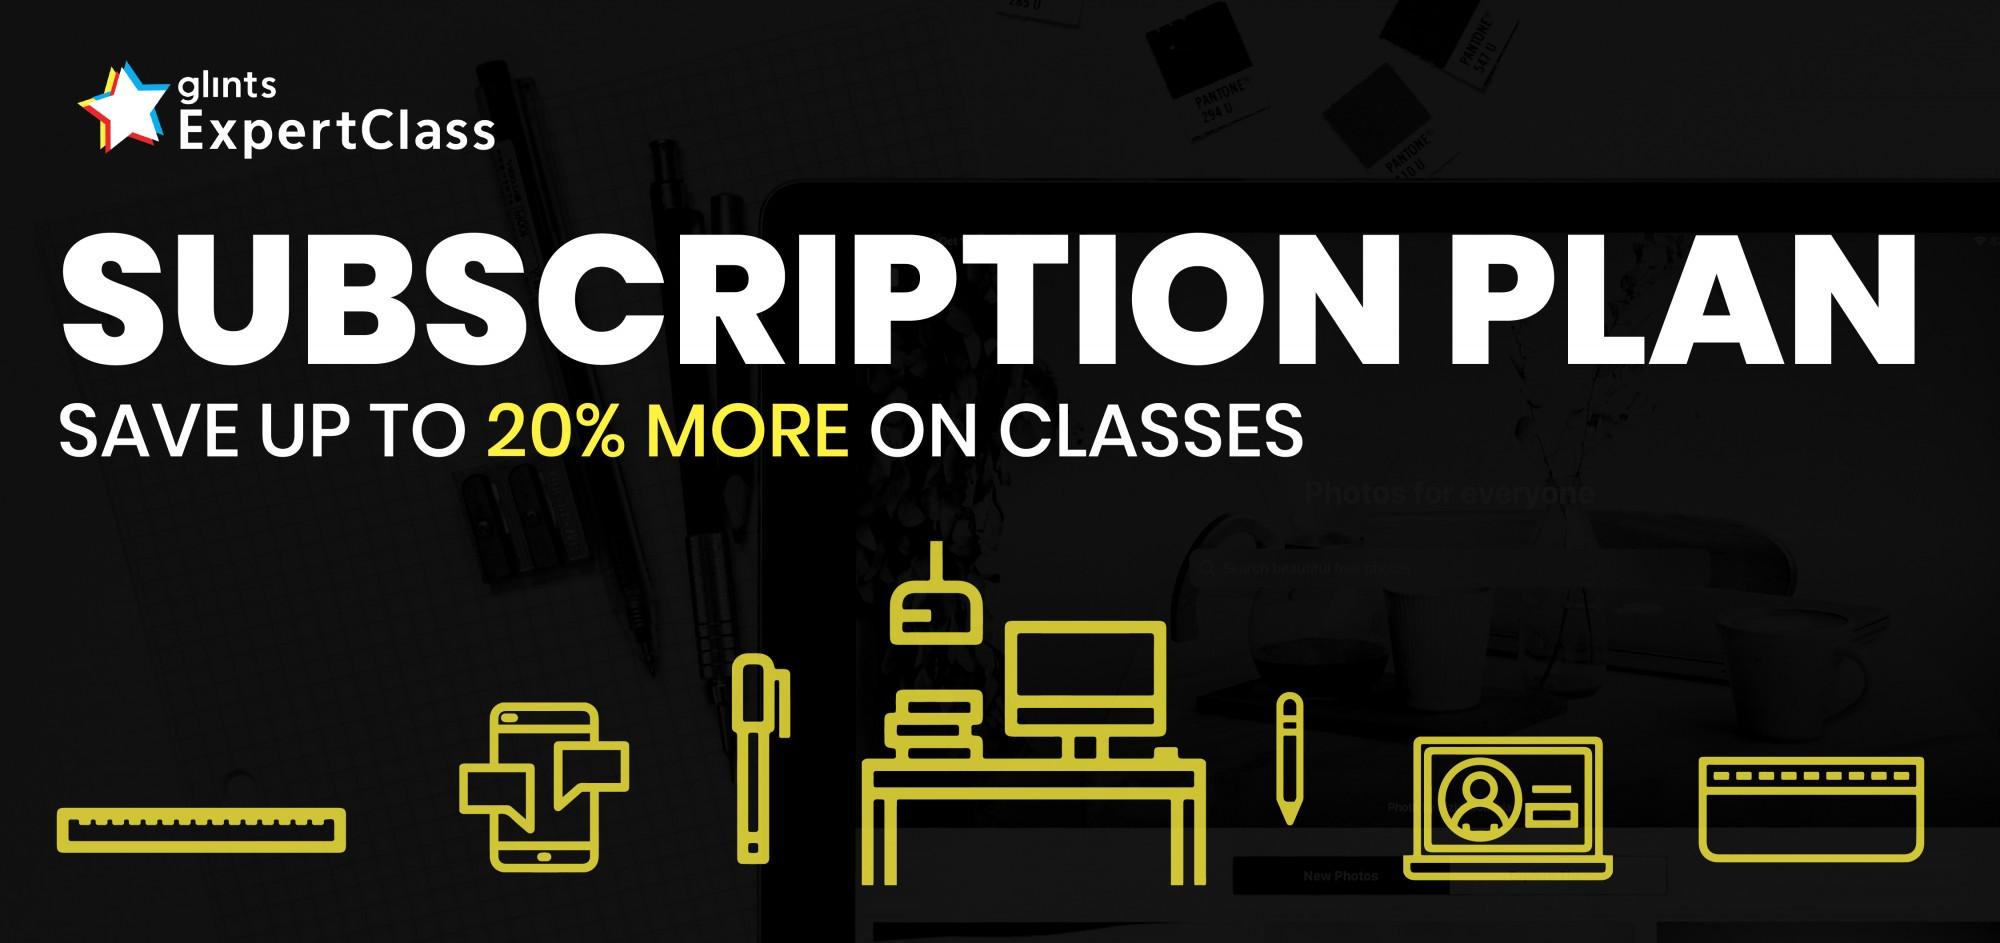 Glints ExpertClass Subscription Plan